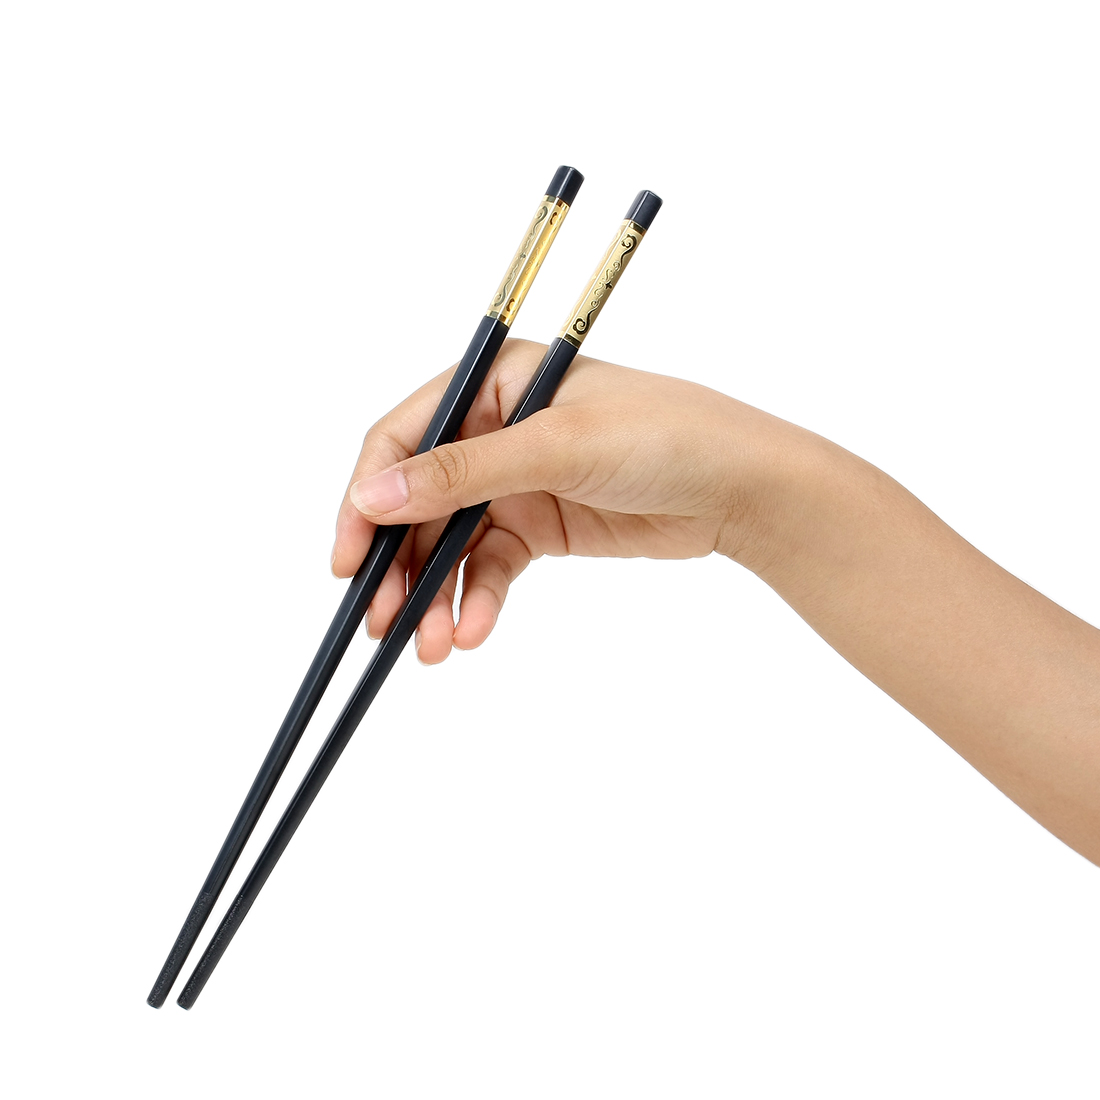 Casa-J Plastic Kitchen Tableware Chopsticks Pair Black Gold Tone